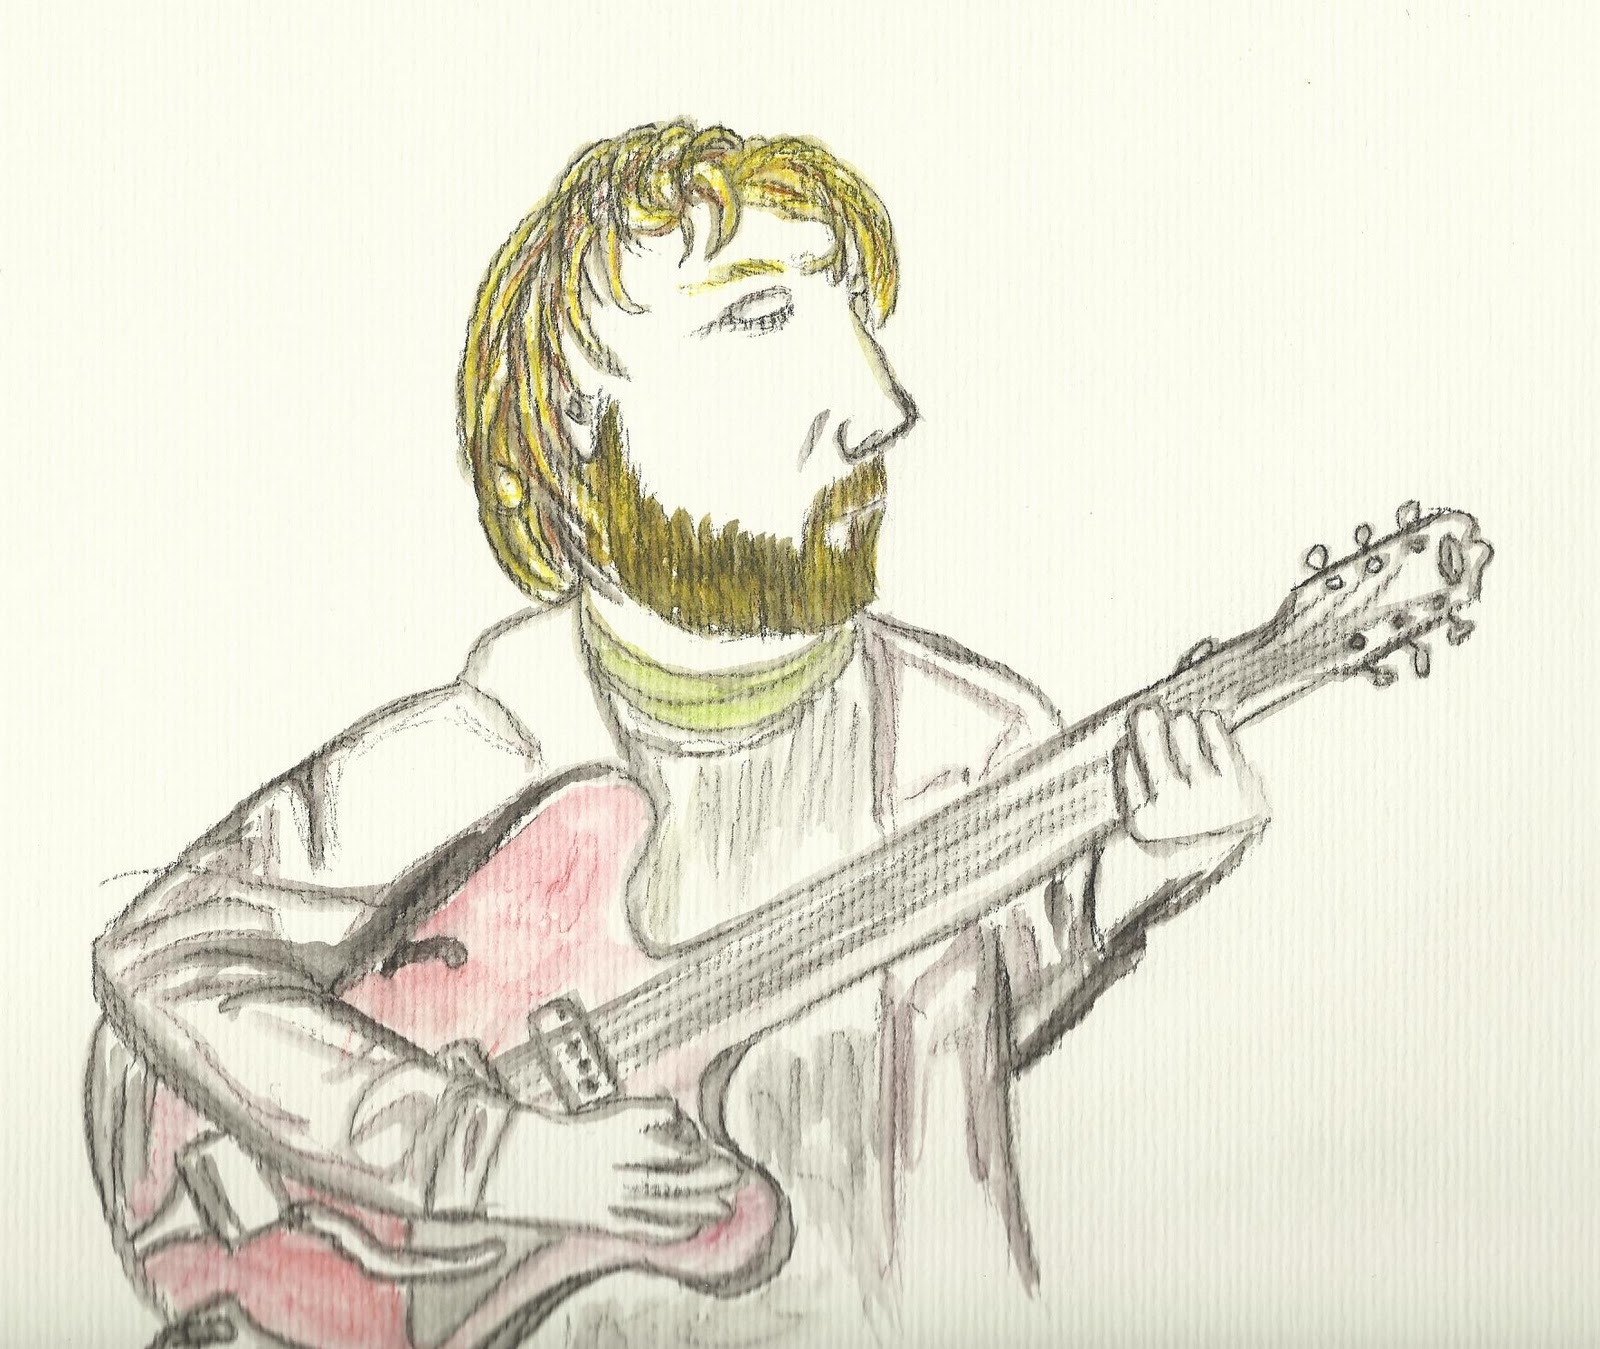 Drawing Greg playing guitar